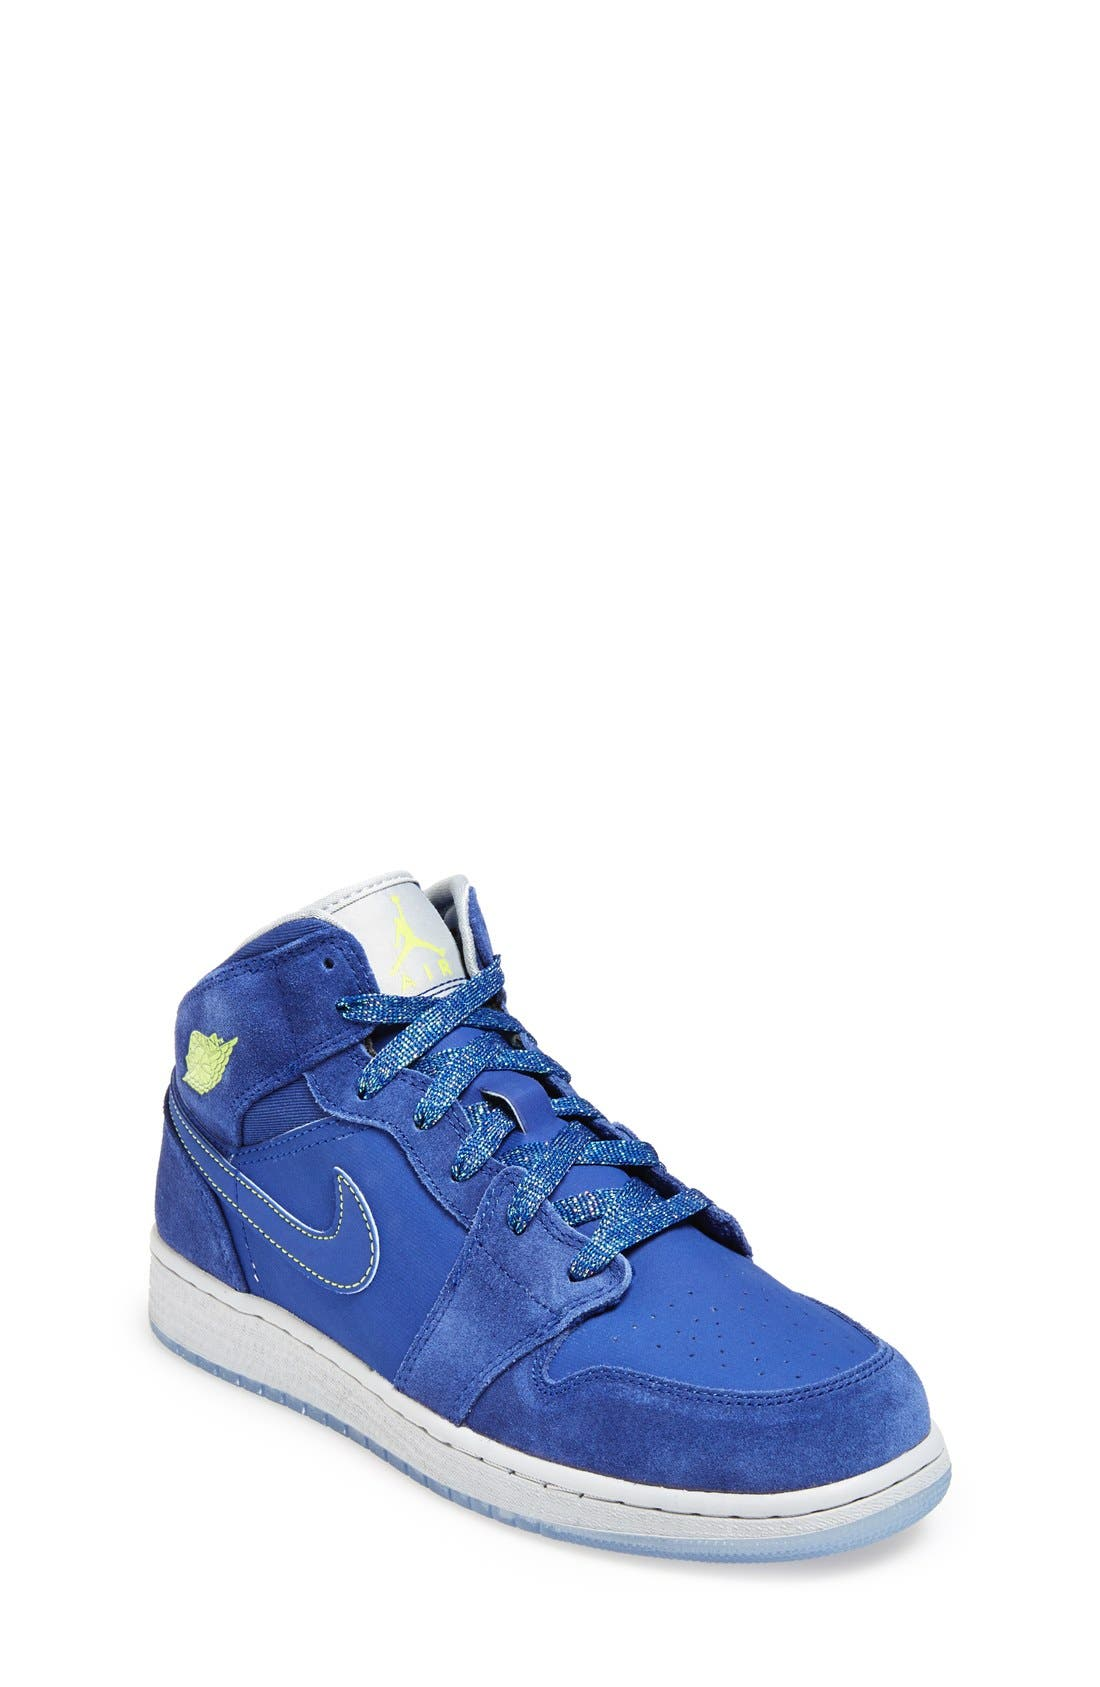 Nike 'Air Jordan 1 Mid' Sneaker,                             Main thumbnail 4, color,